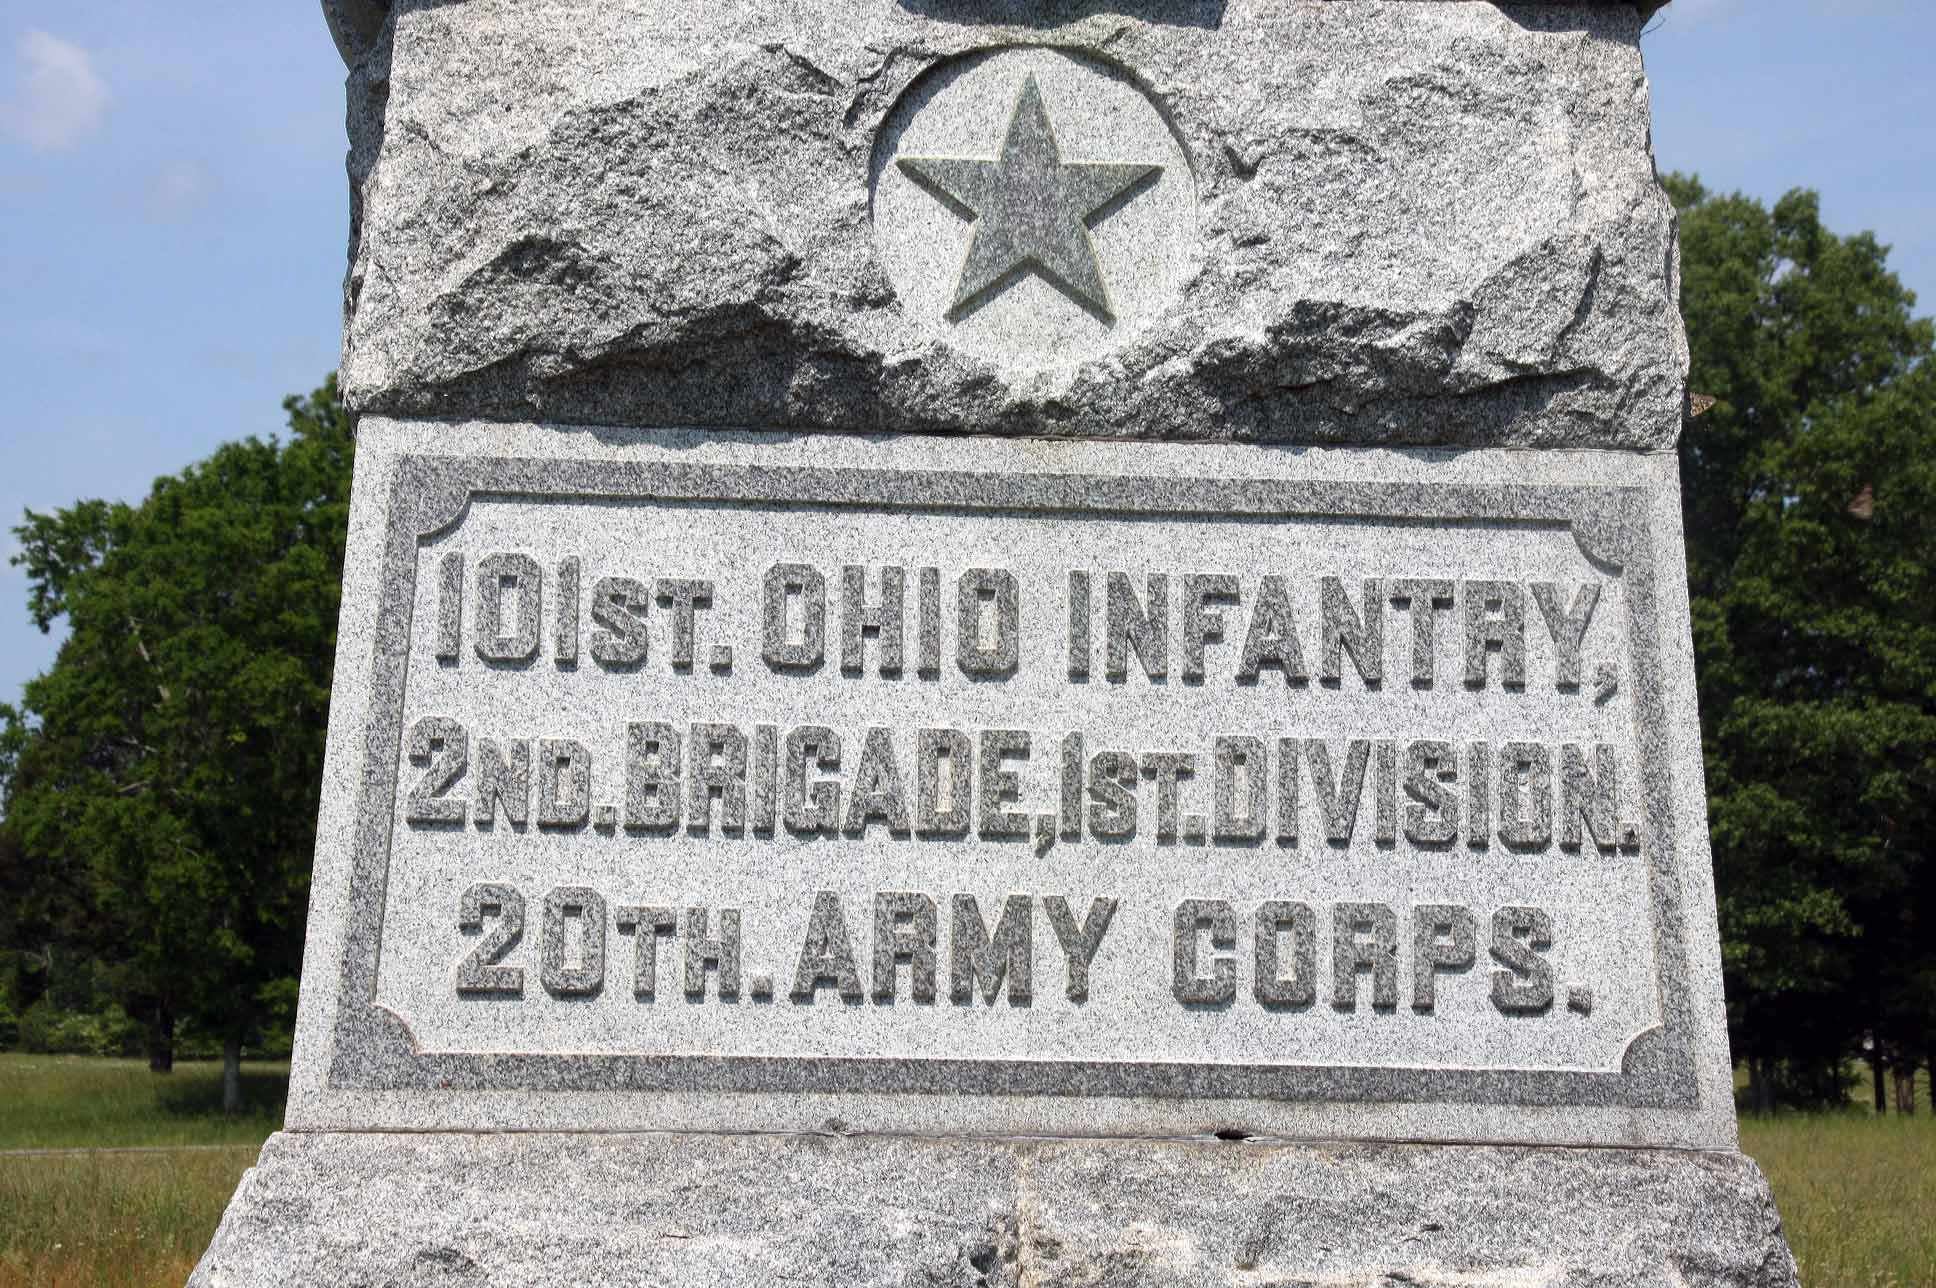 101st Ohio Infantry Regiment Monument, click photo to enlarge.